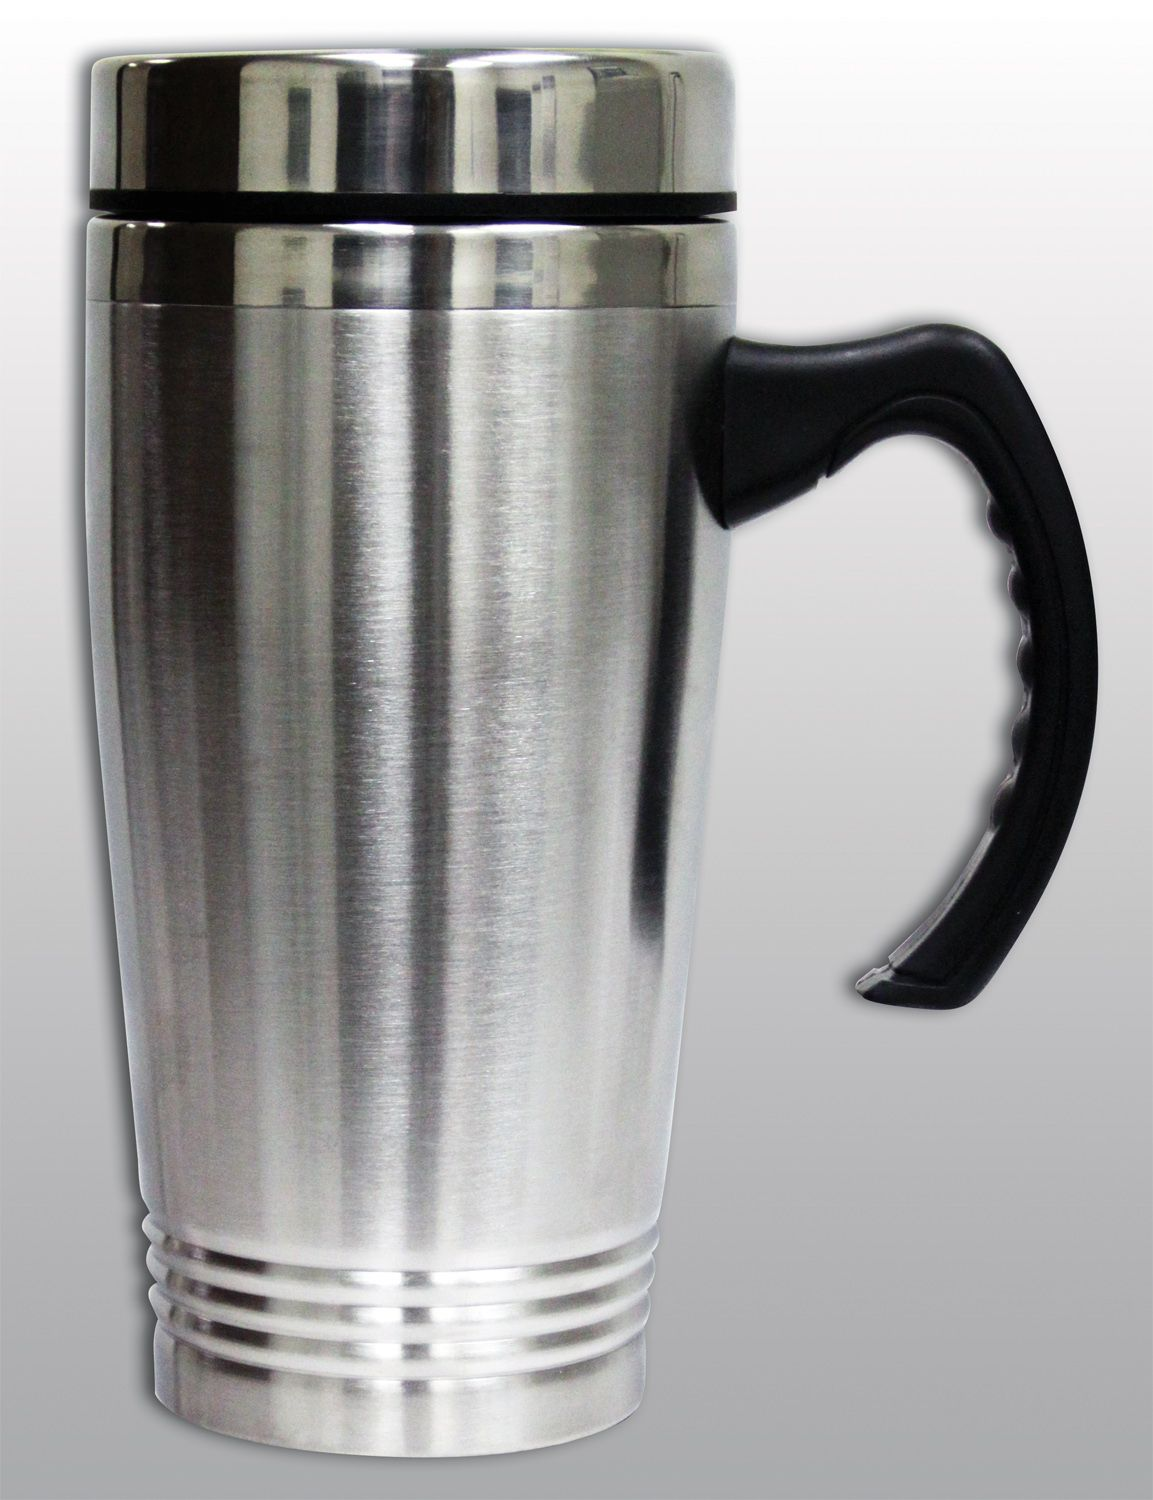 16oz. Stainless Steel Mug with Handle PartNumber: 082W002061225000P KsnValue: 2061225